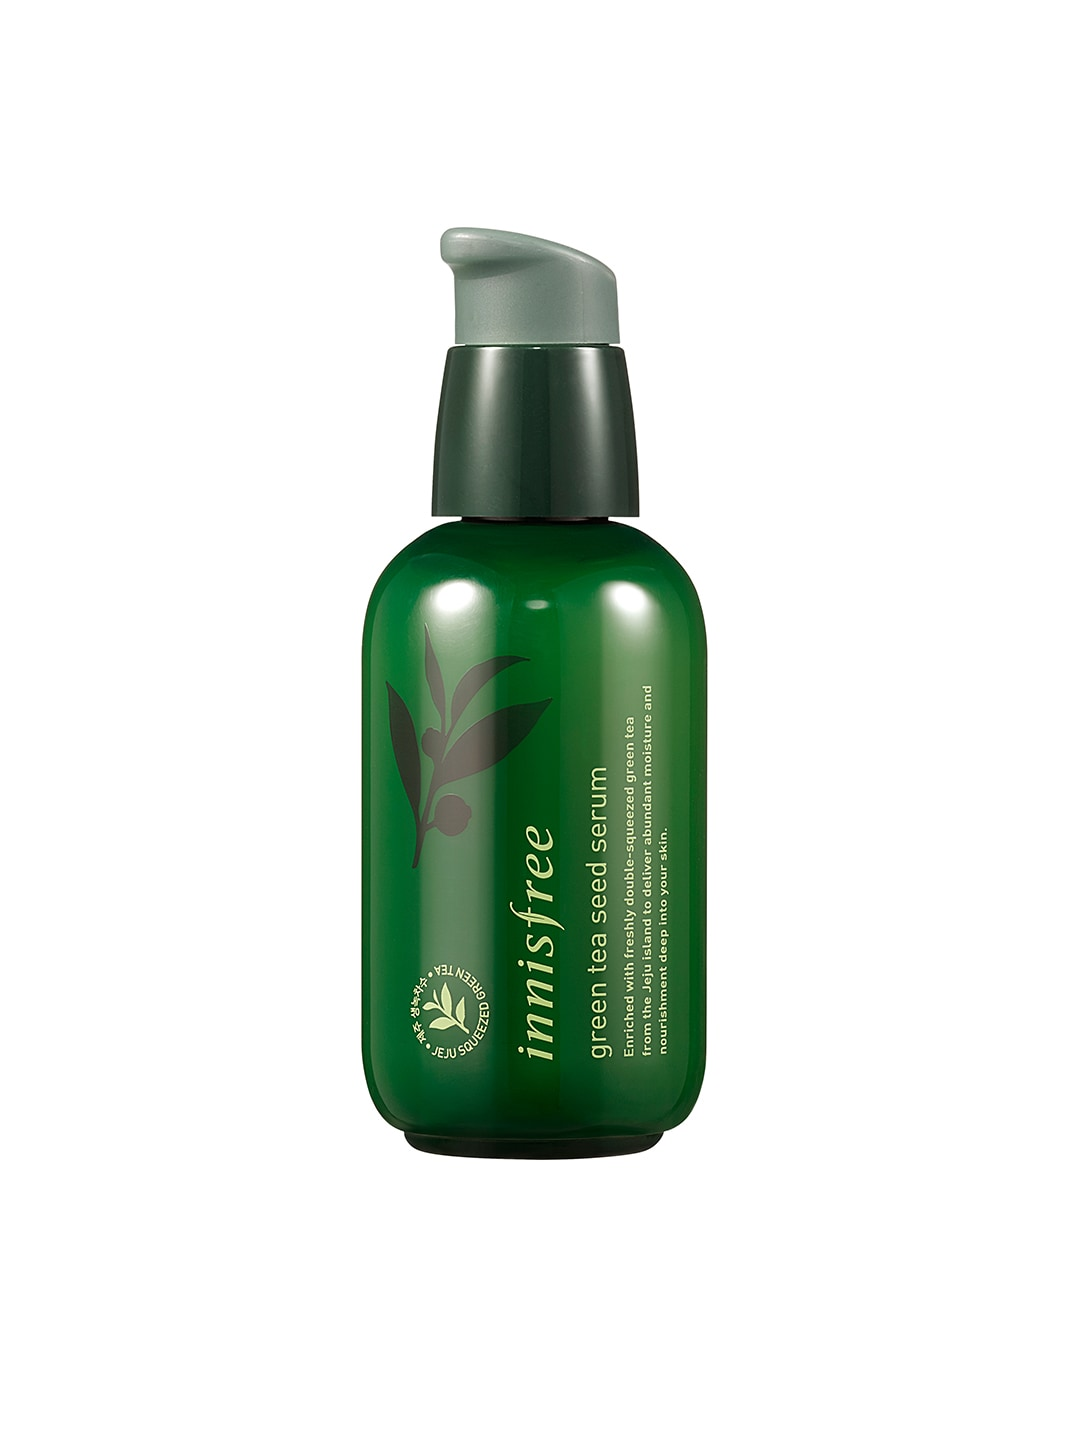 Buy Innisfree Green Tea Seed Essence In Lotion 100ml Face Serum The 80ml Similar Products